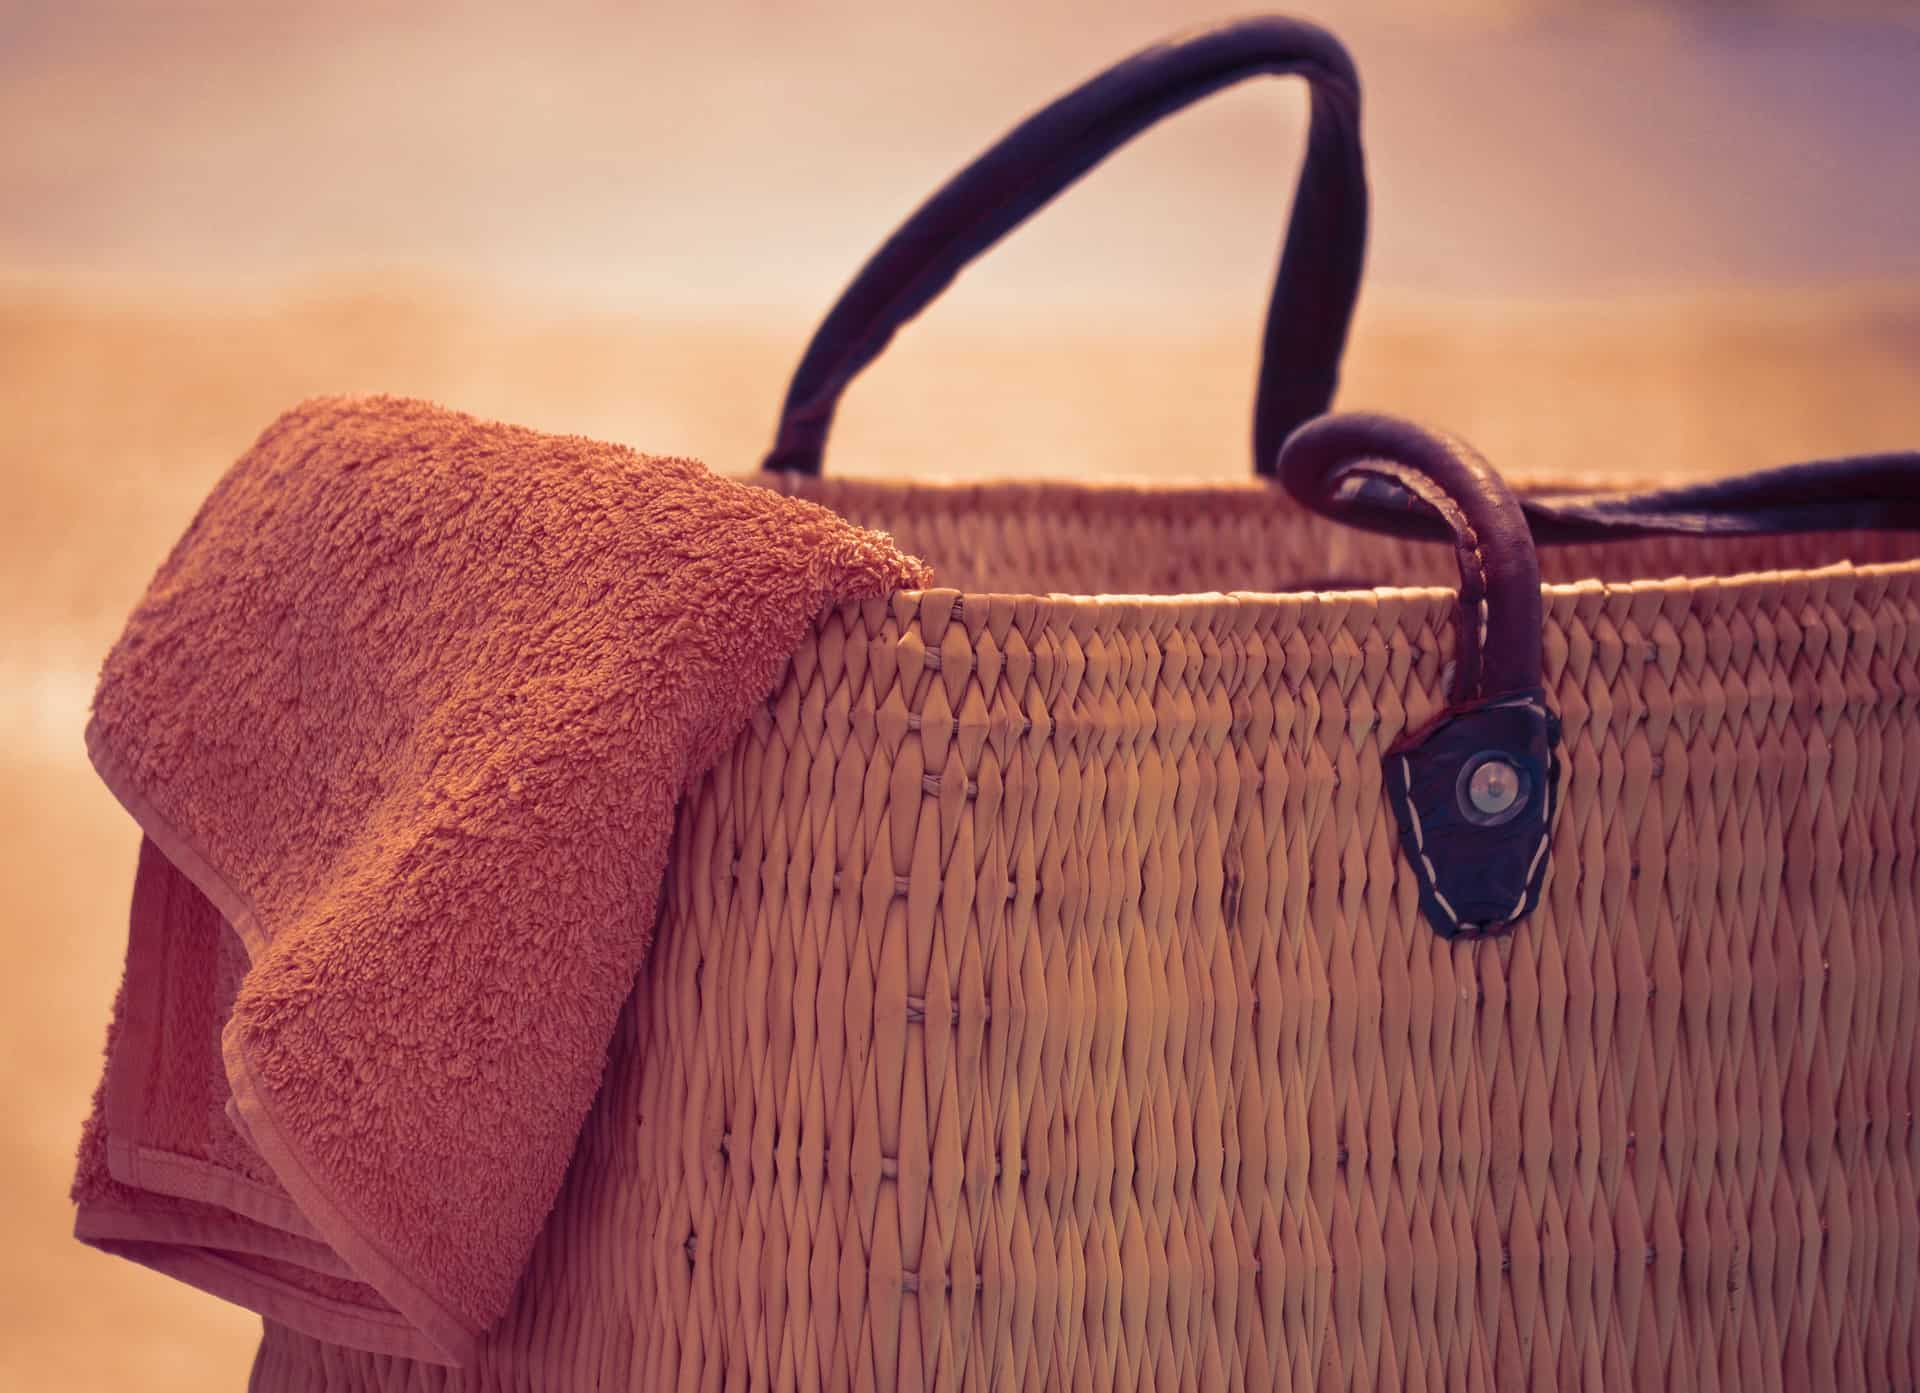 Beach Accessories: To Achieve The Perfect Look